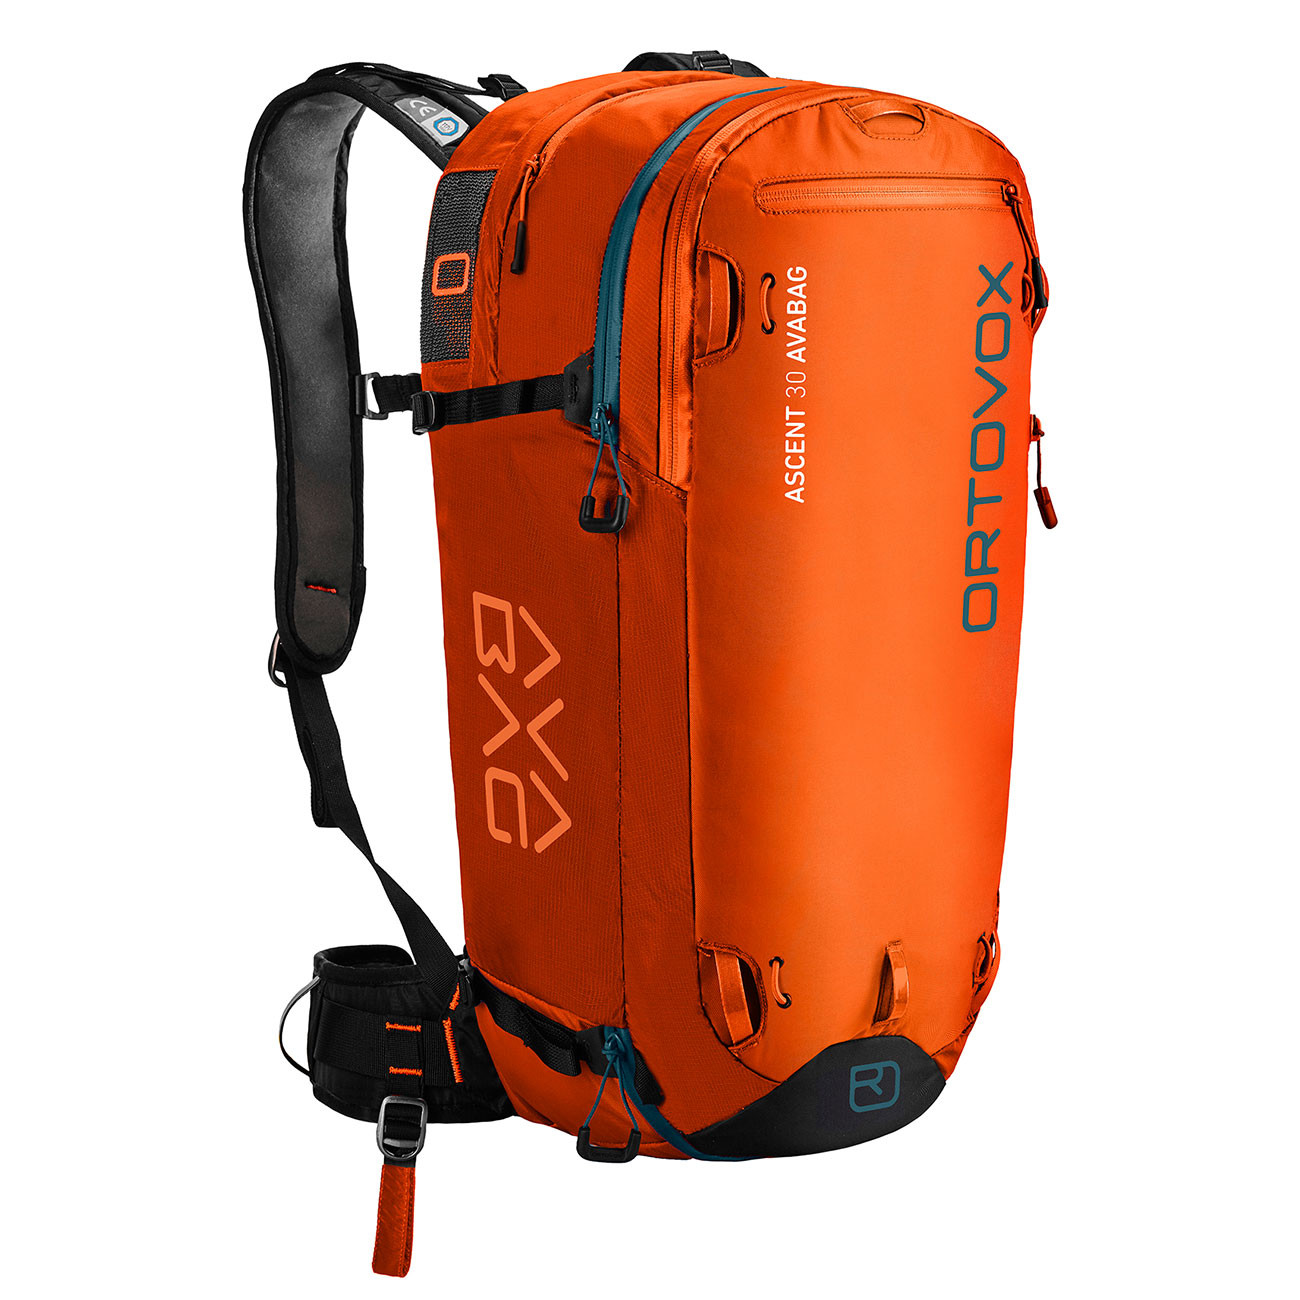 Avalanche backpack Ortovox Ascent 30 Avabag